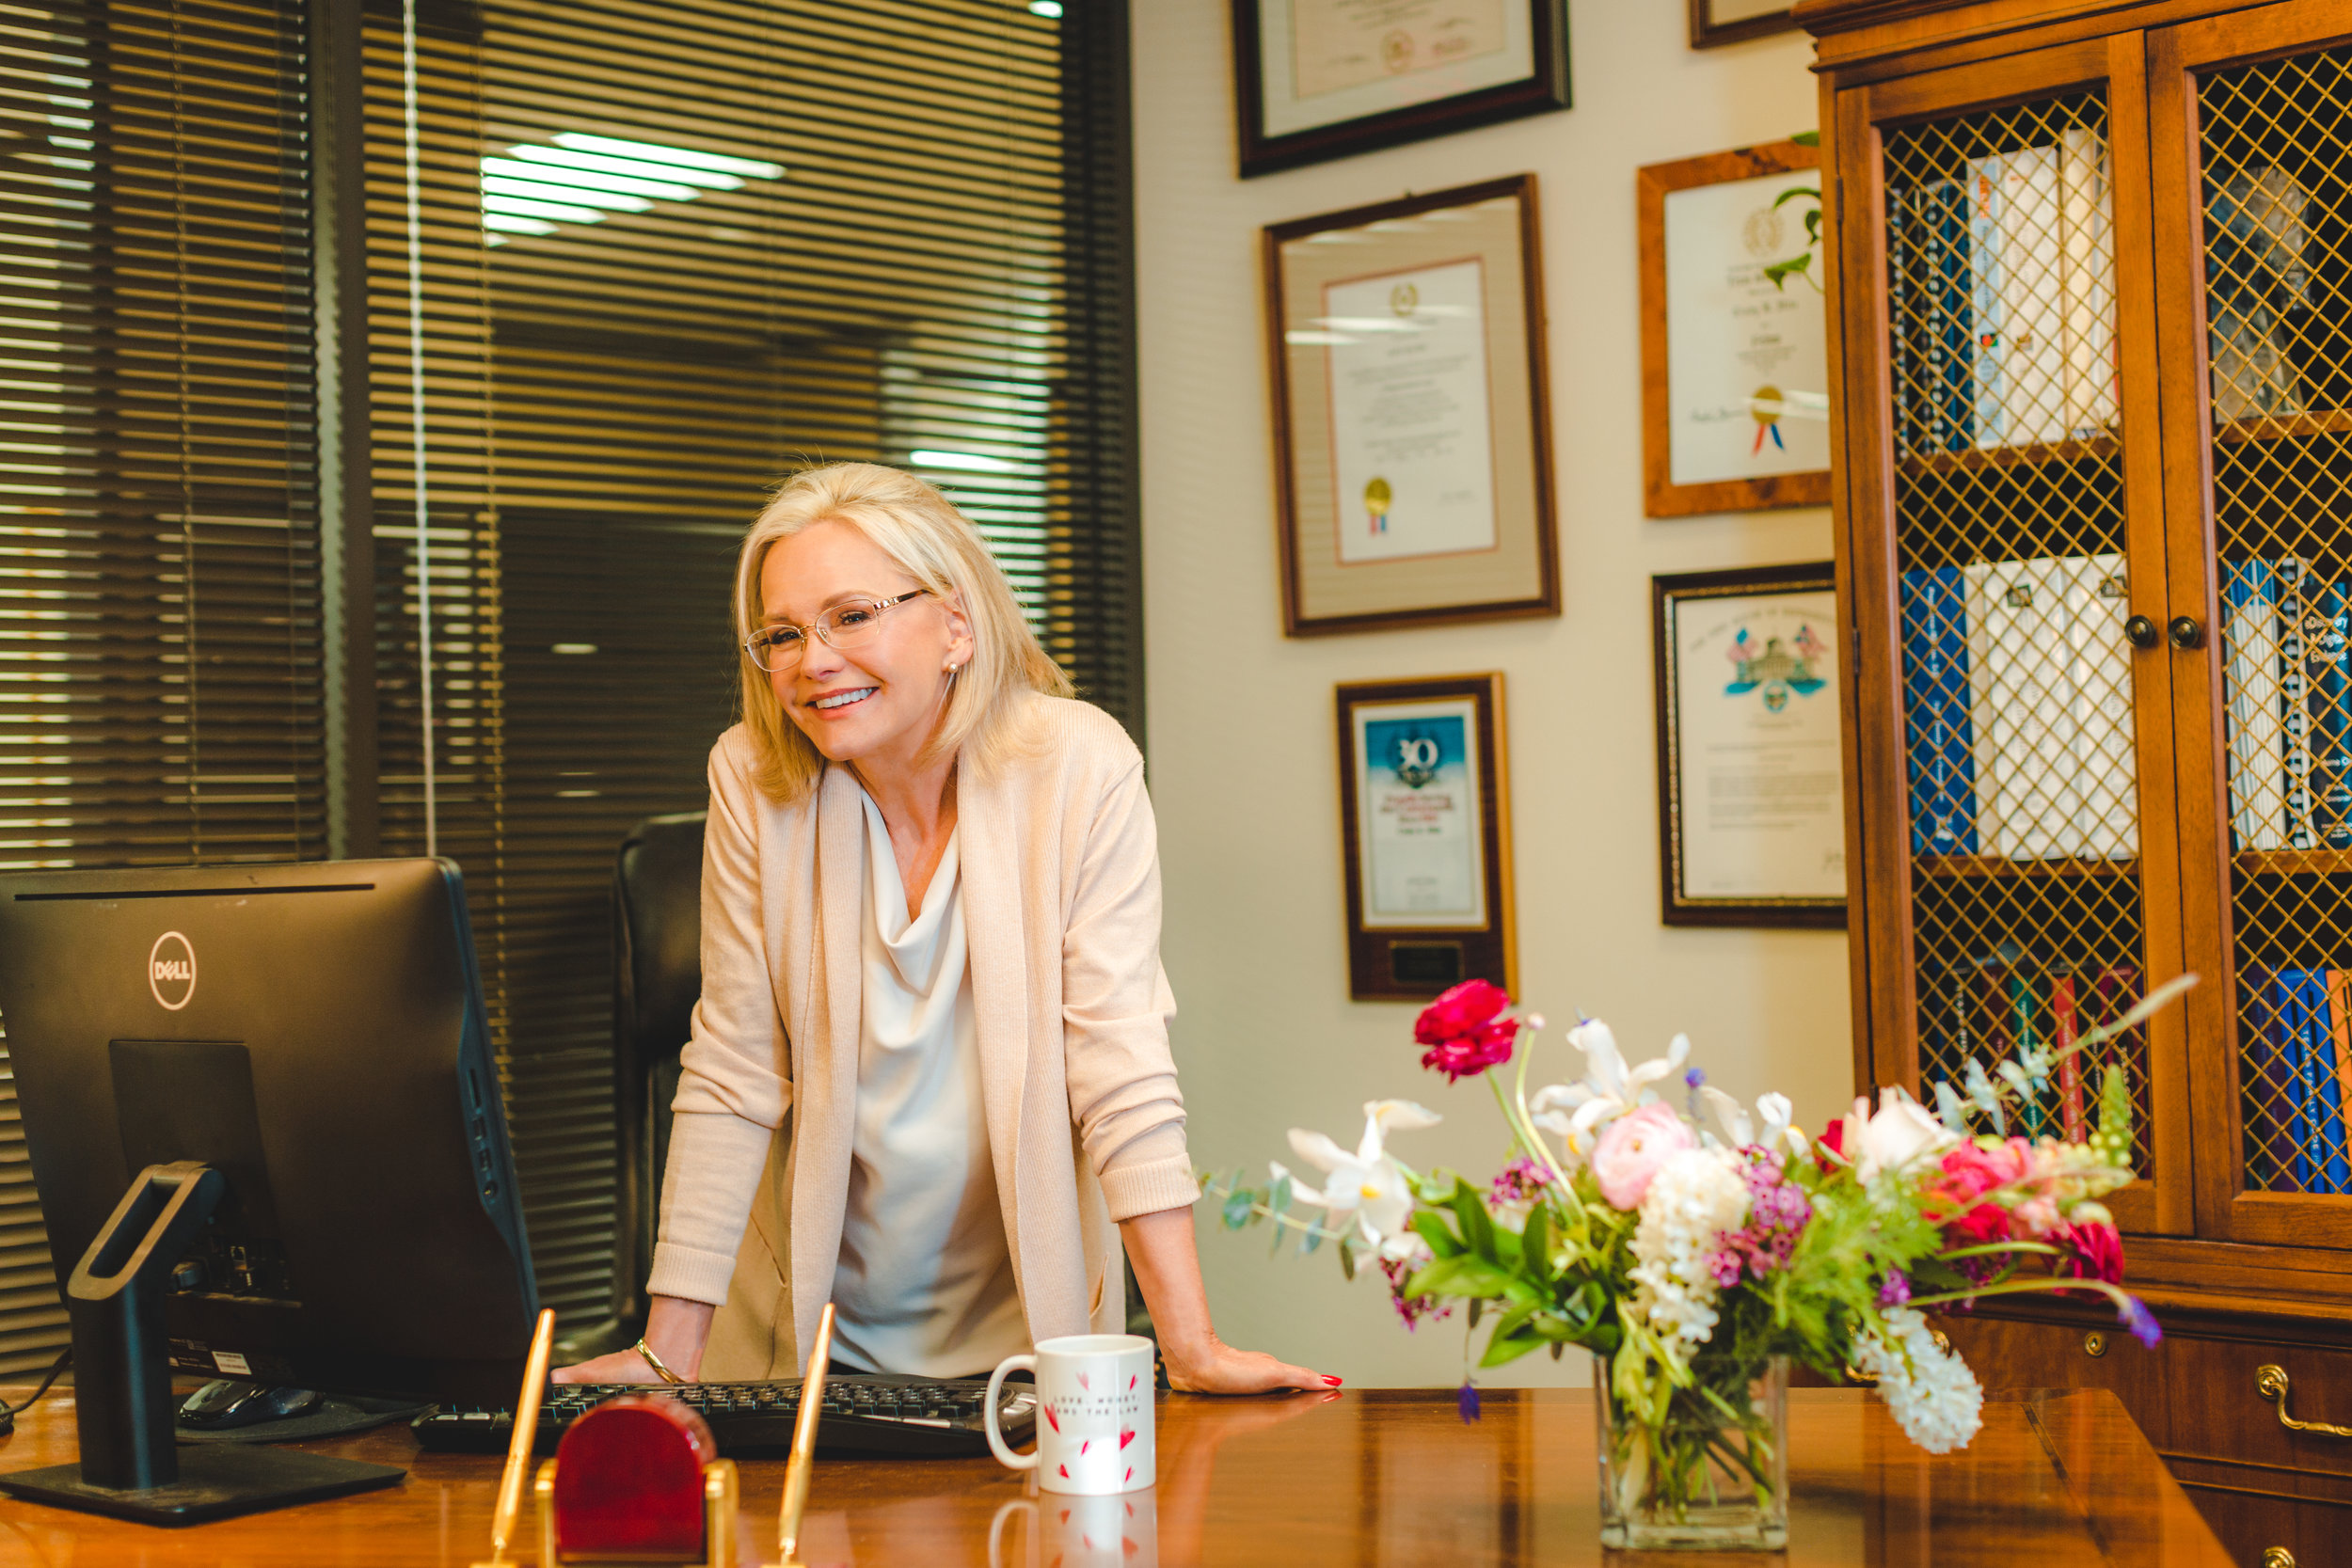 Family law attorney, and founder of Love, Money & the Law, Cindy Hide, at her desk inside her family law practice in Houston, Texas.